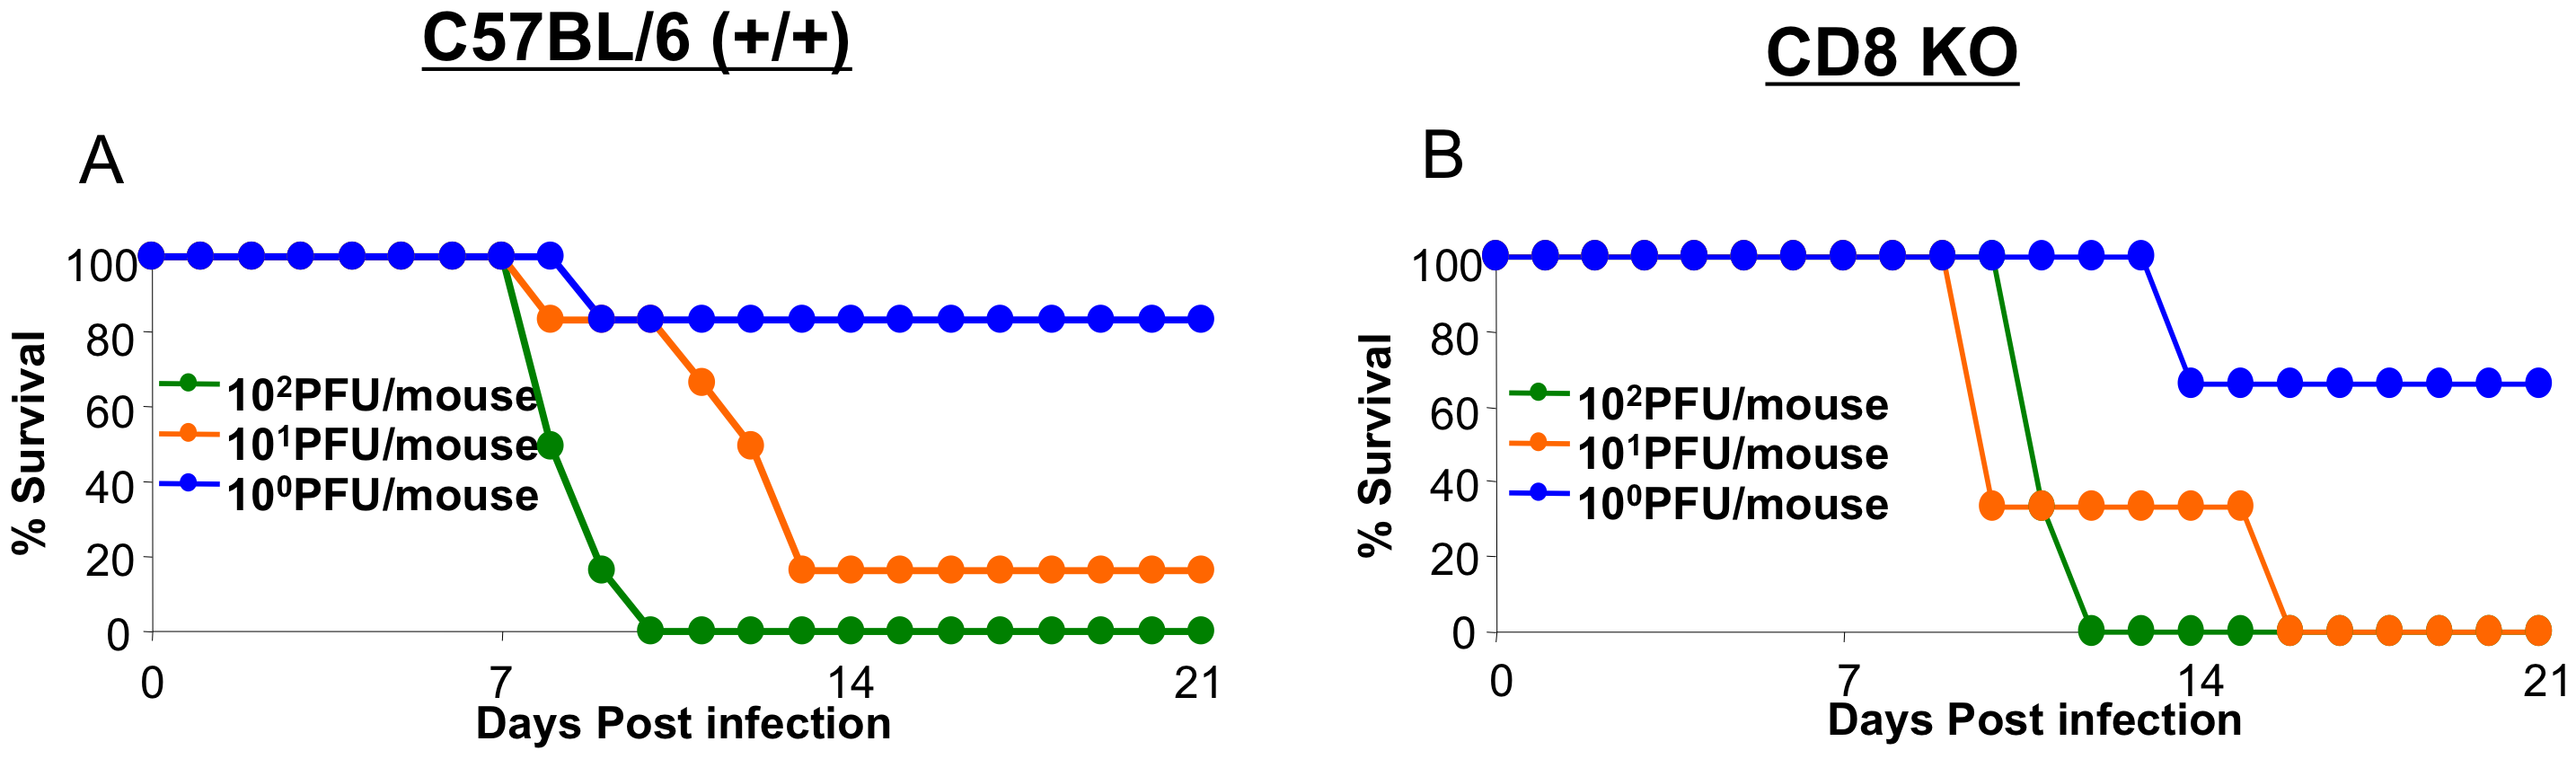 Effect of CD8 T cell deficiency on survival of mice infected with H5N1 viruses.